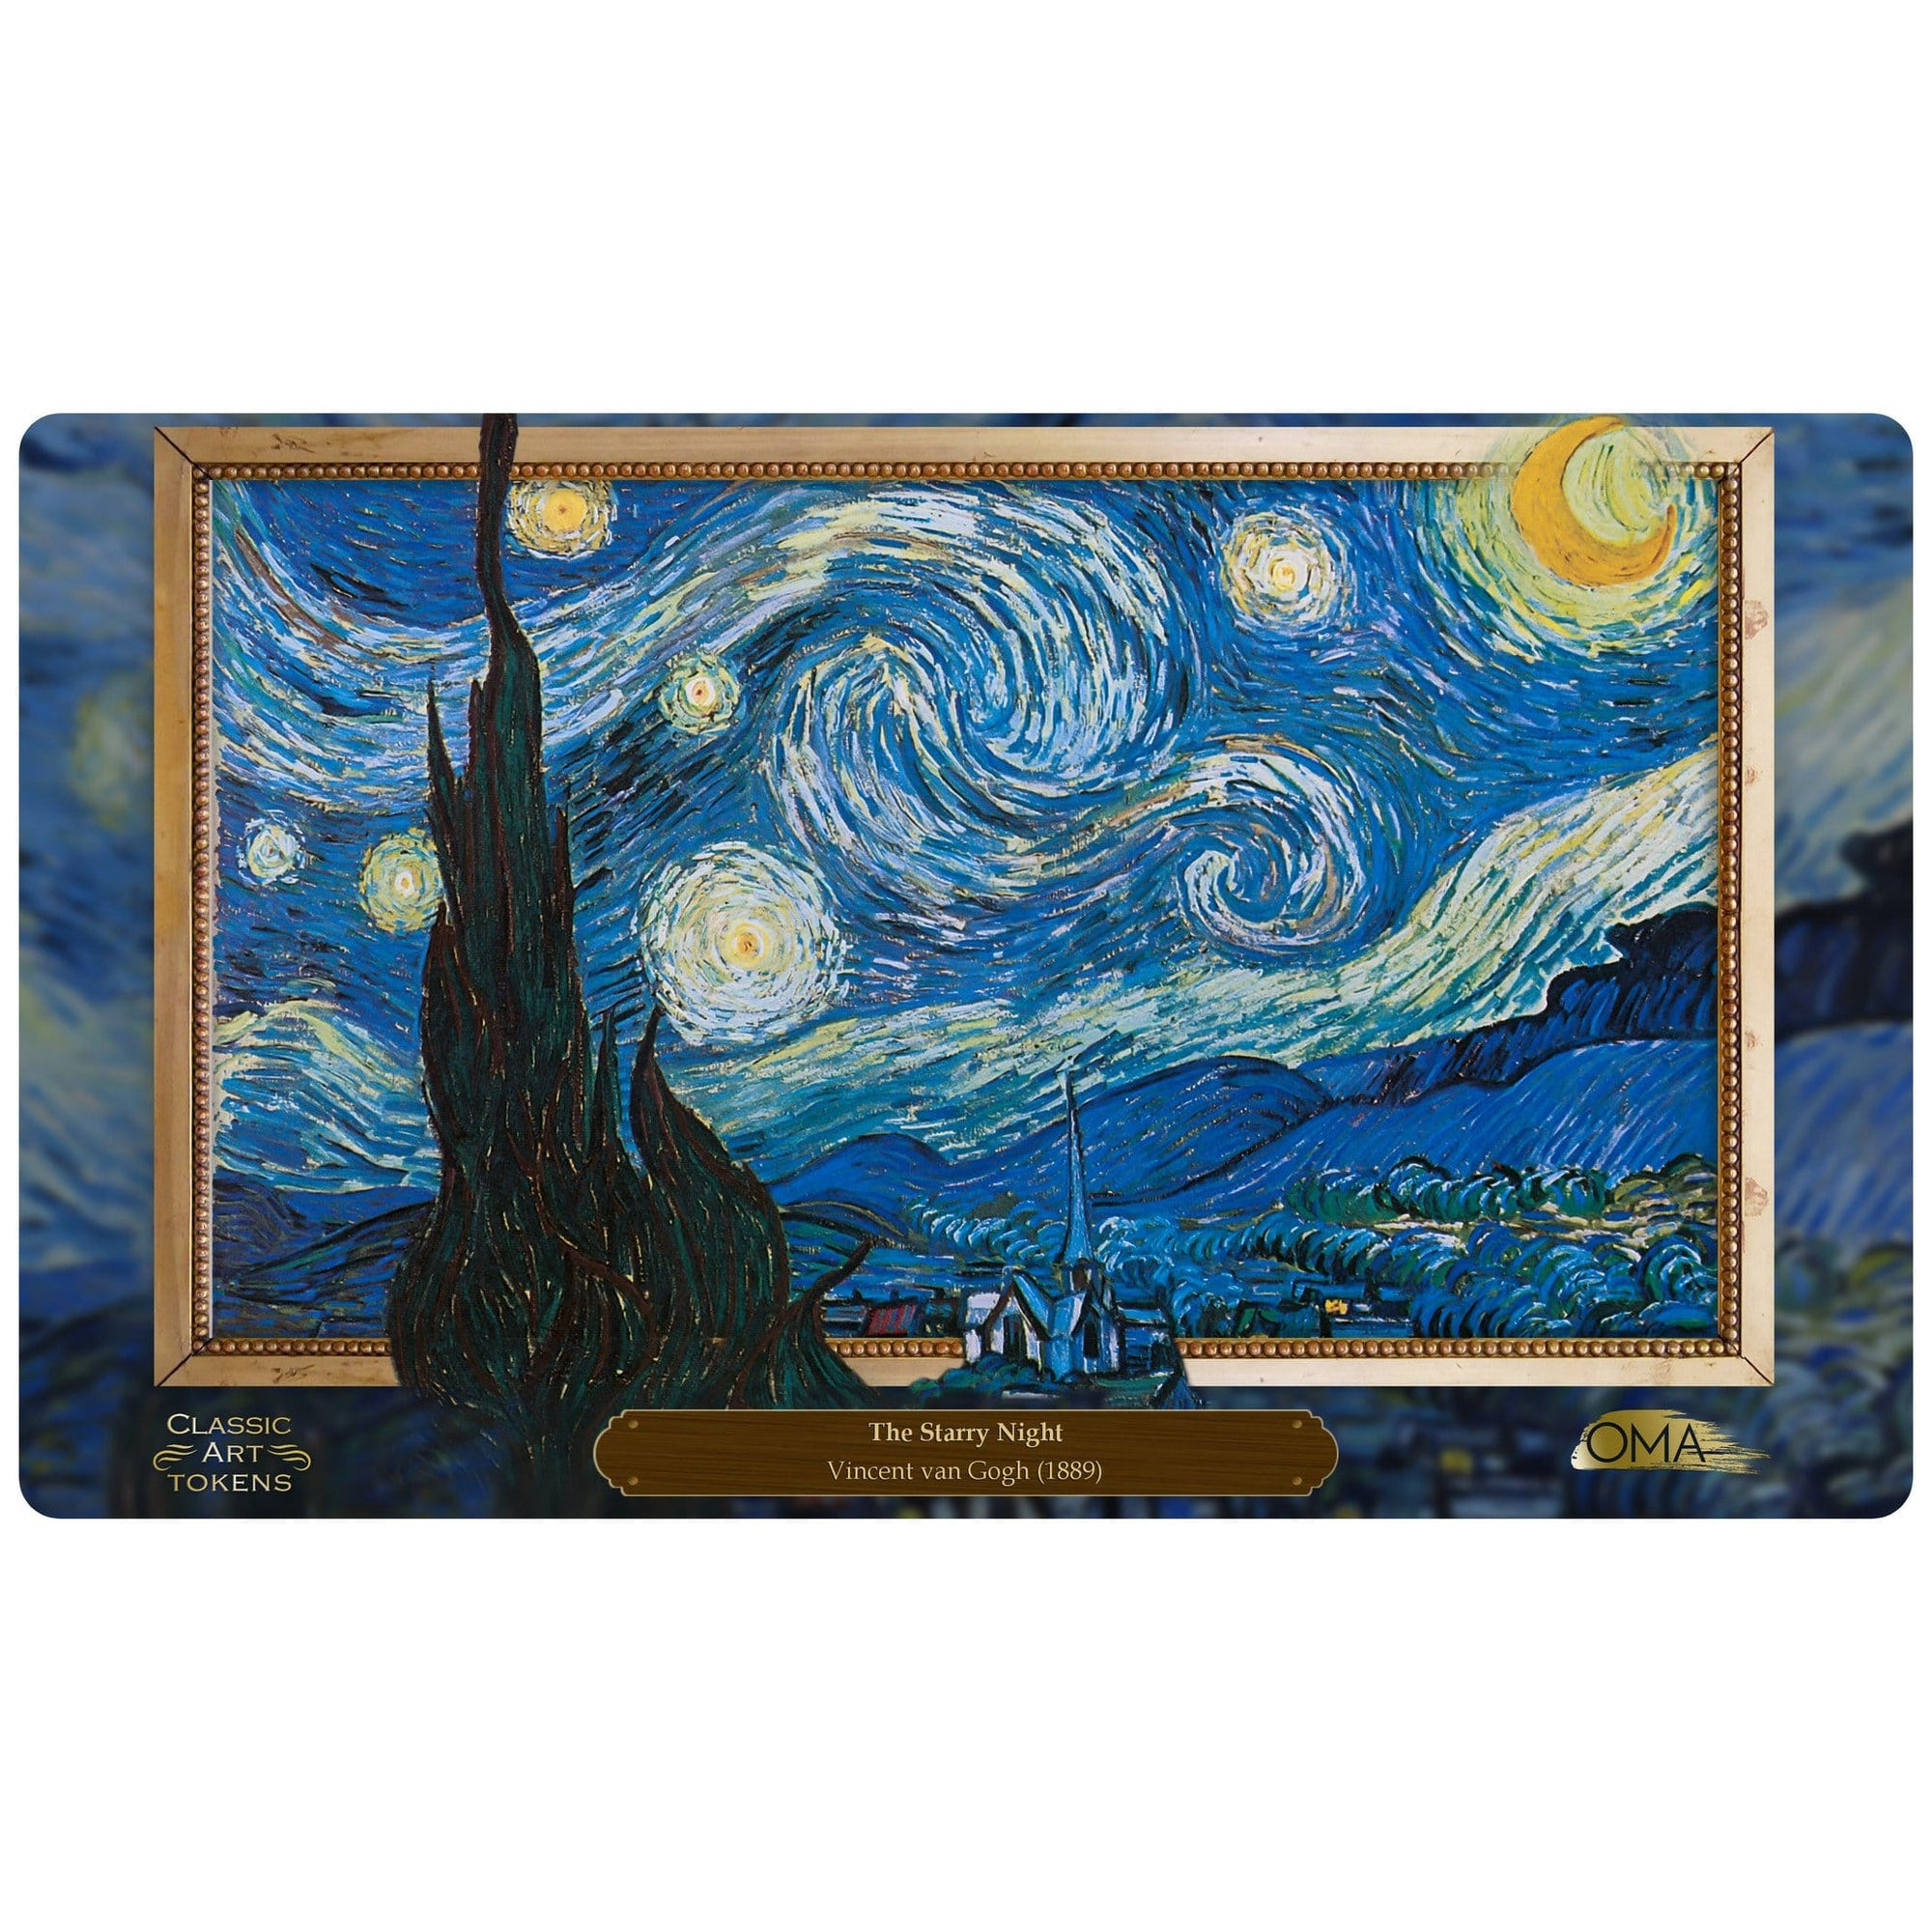 Emblem Playmat by Vincent van Gogh - Playmat - Original Magic Art - Accessories for Magic the Gathering and other card games